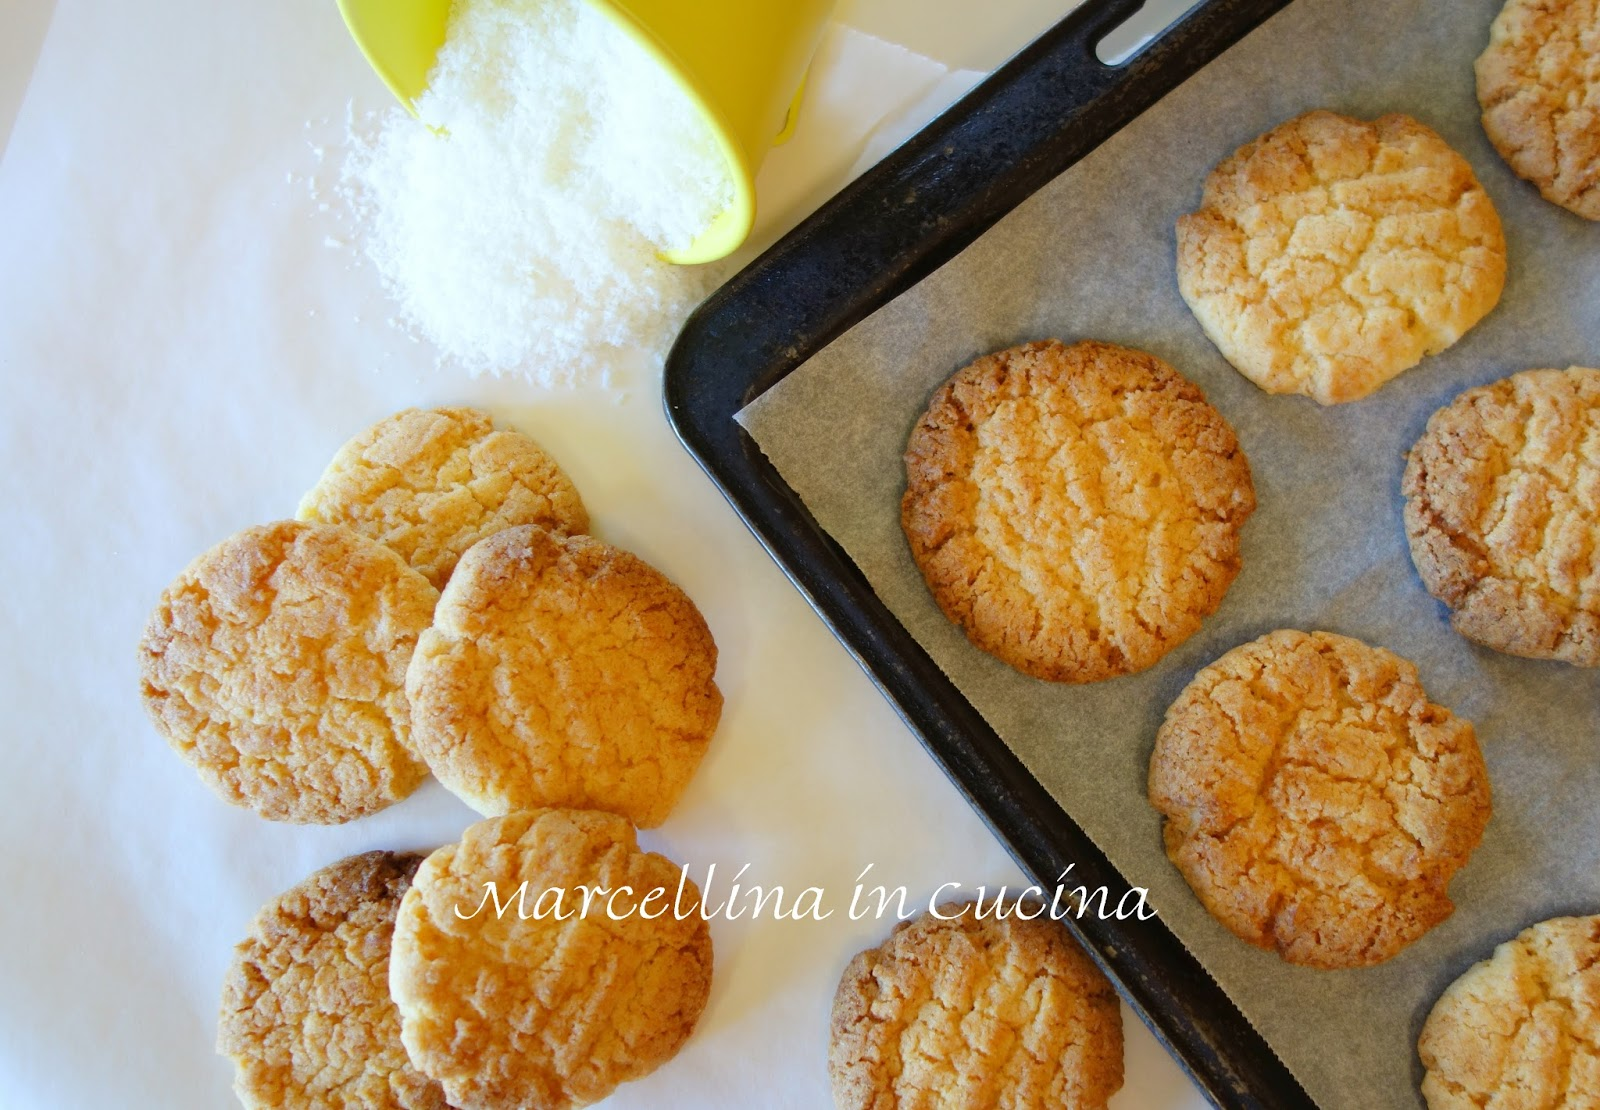 Coconut Biscuits Crispy And Crunchy Marcellina In Cucina